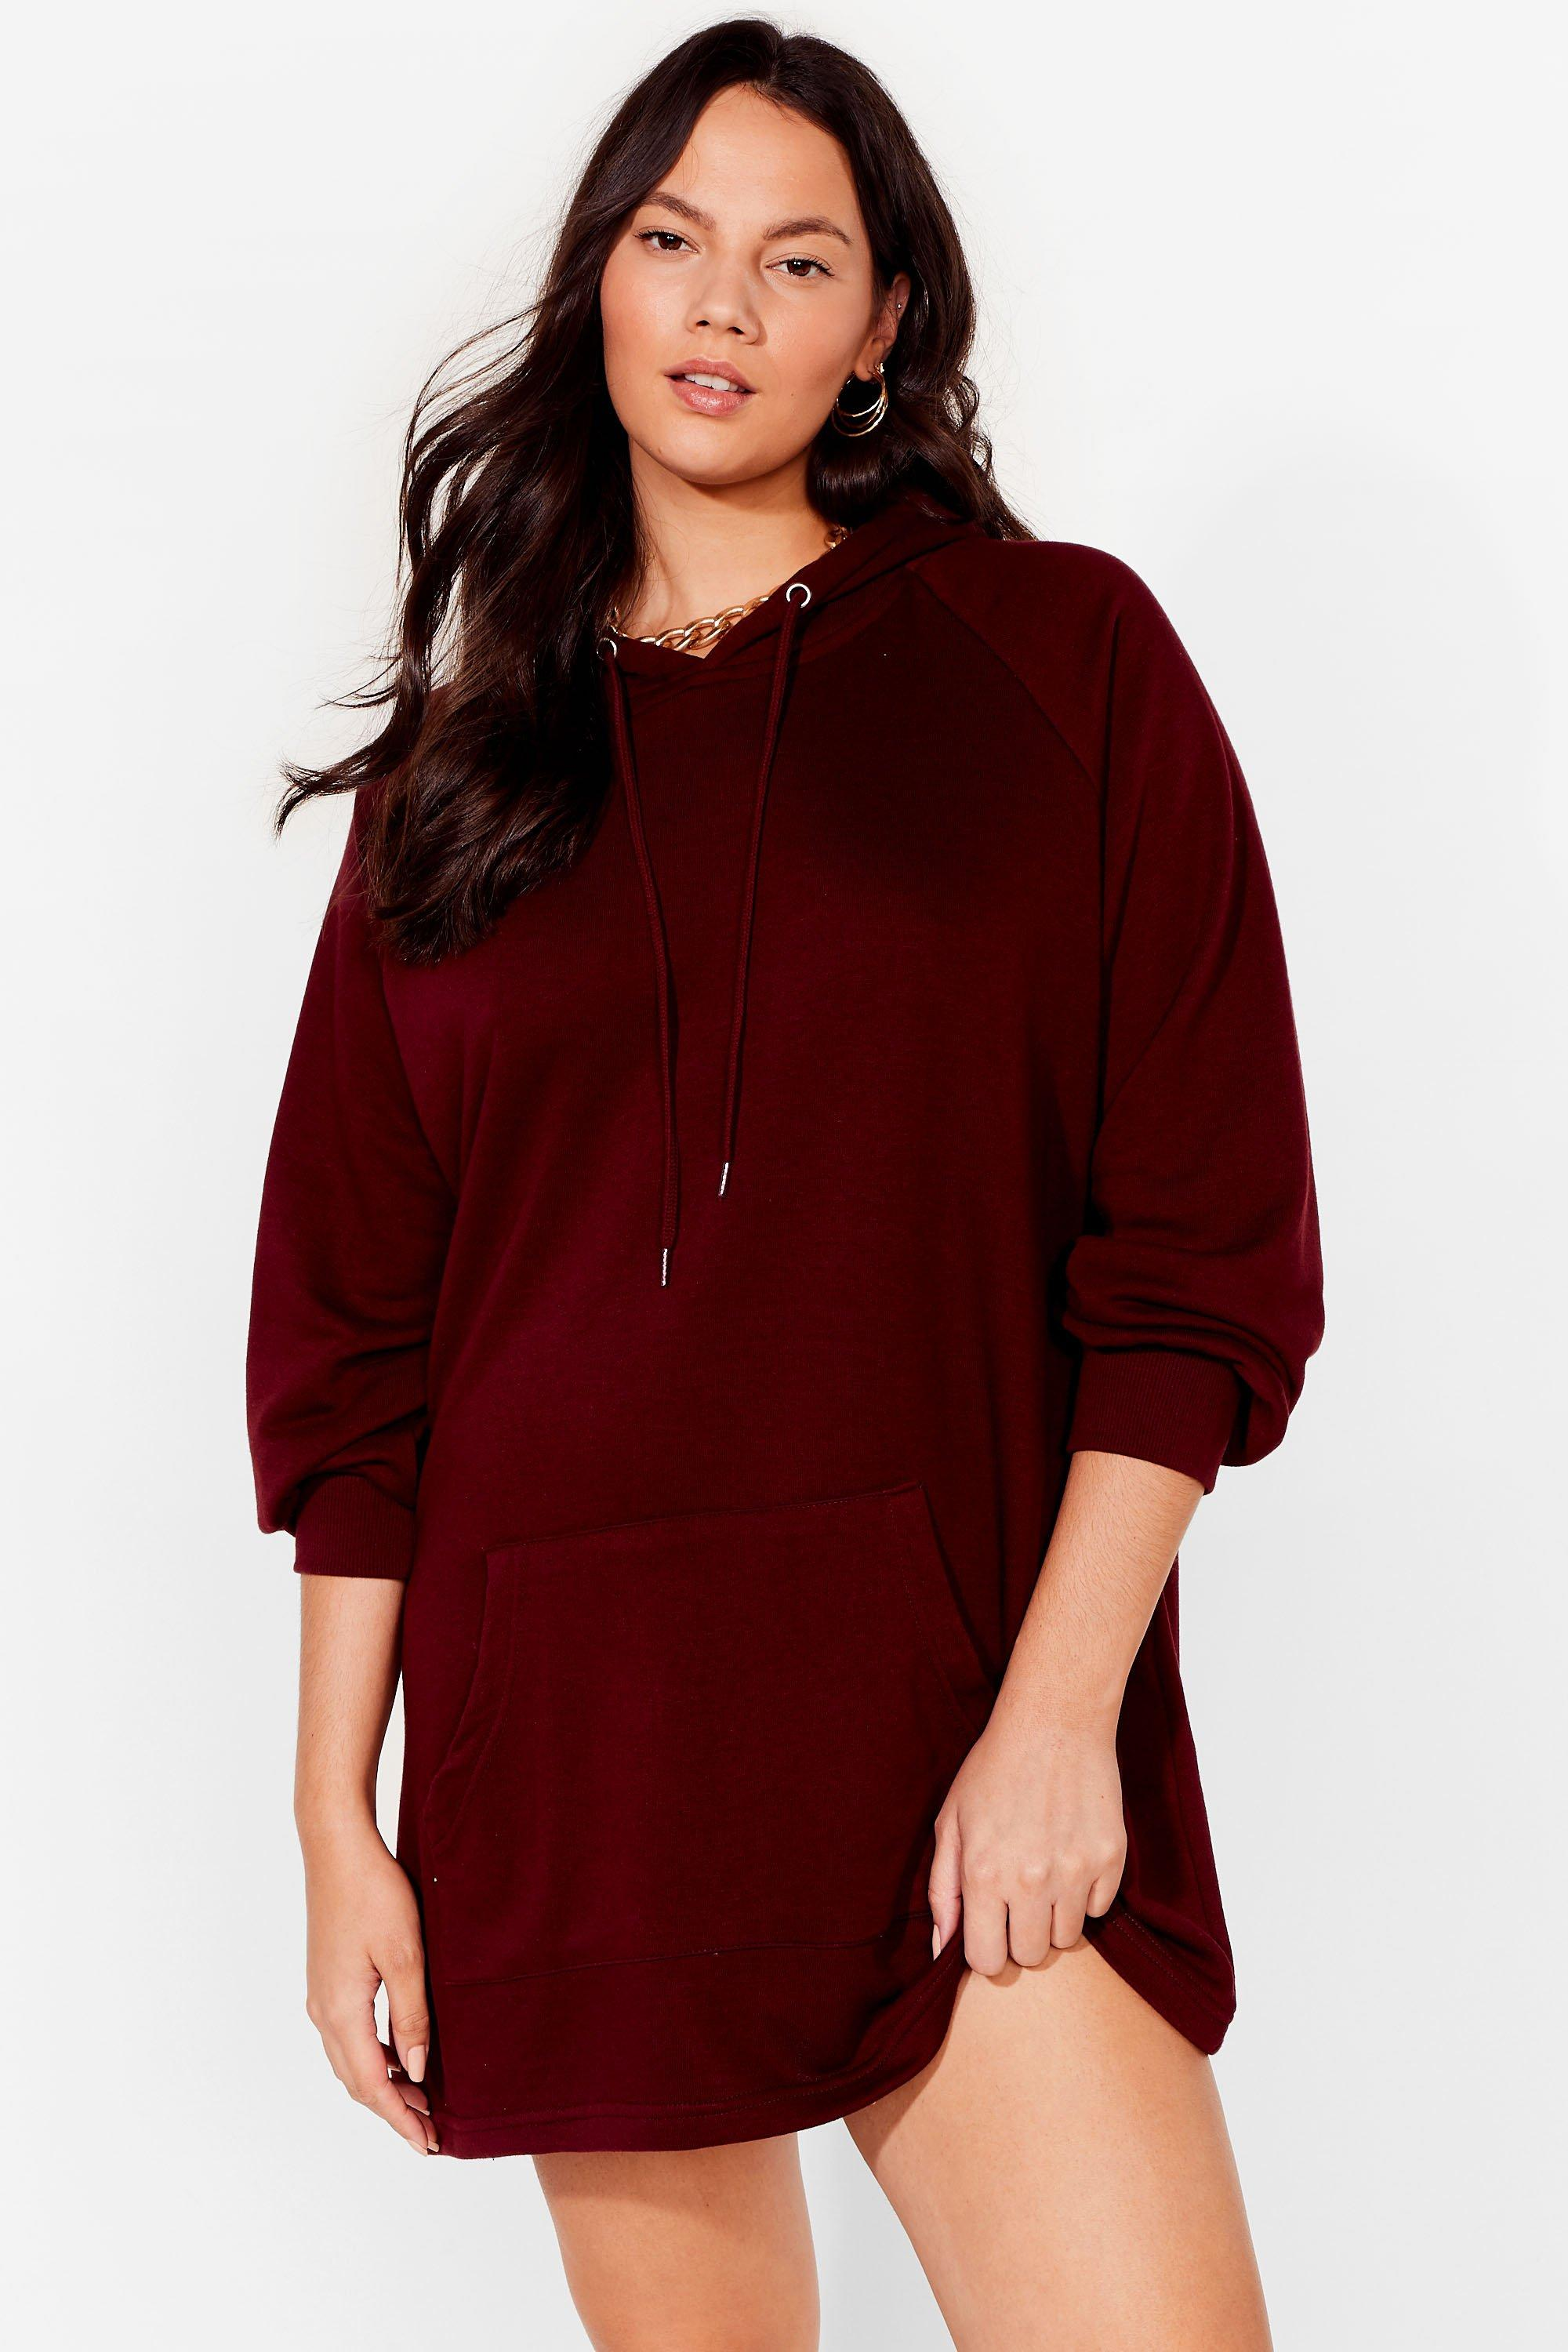 All Night Longline Plus Oversized Sweatshirt Dress 14